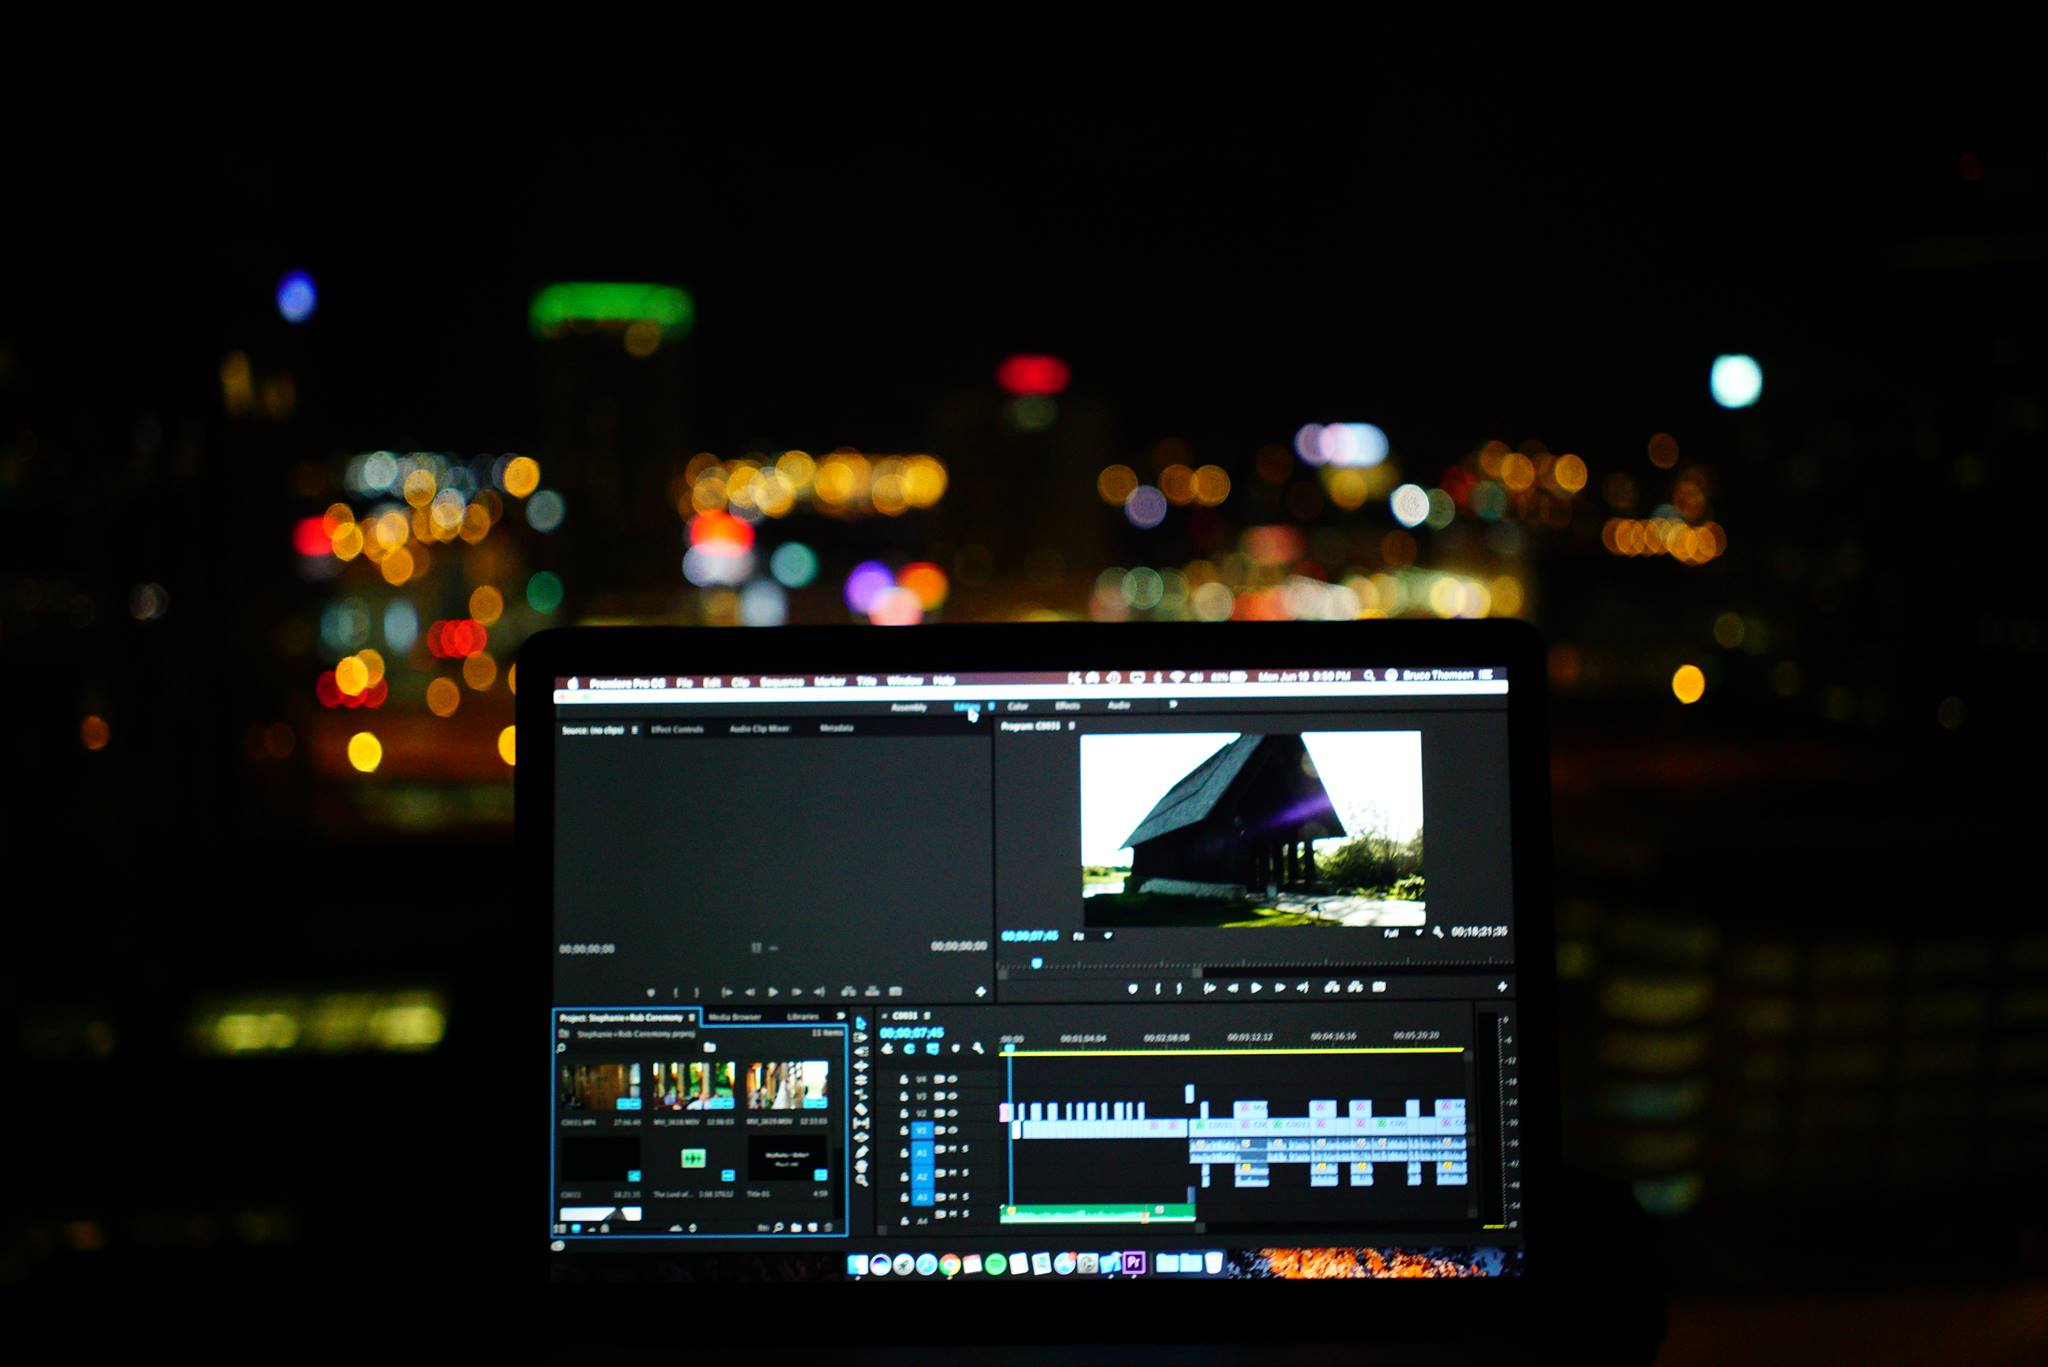 Commercial videography sample image, computer editing with lights in background